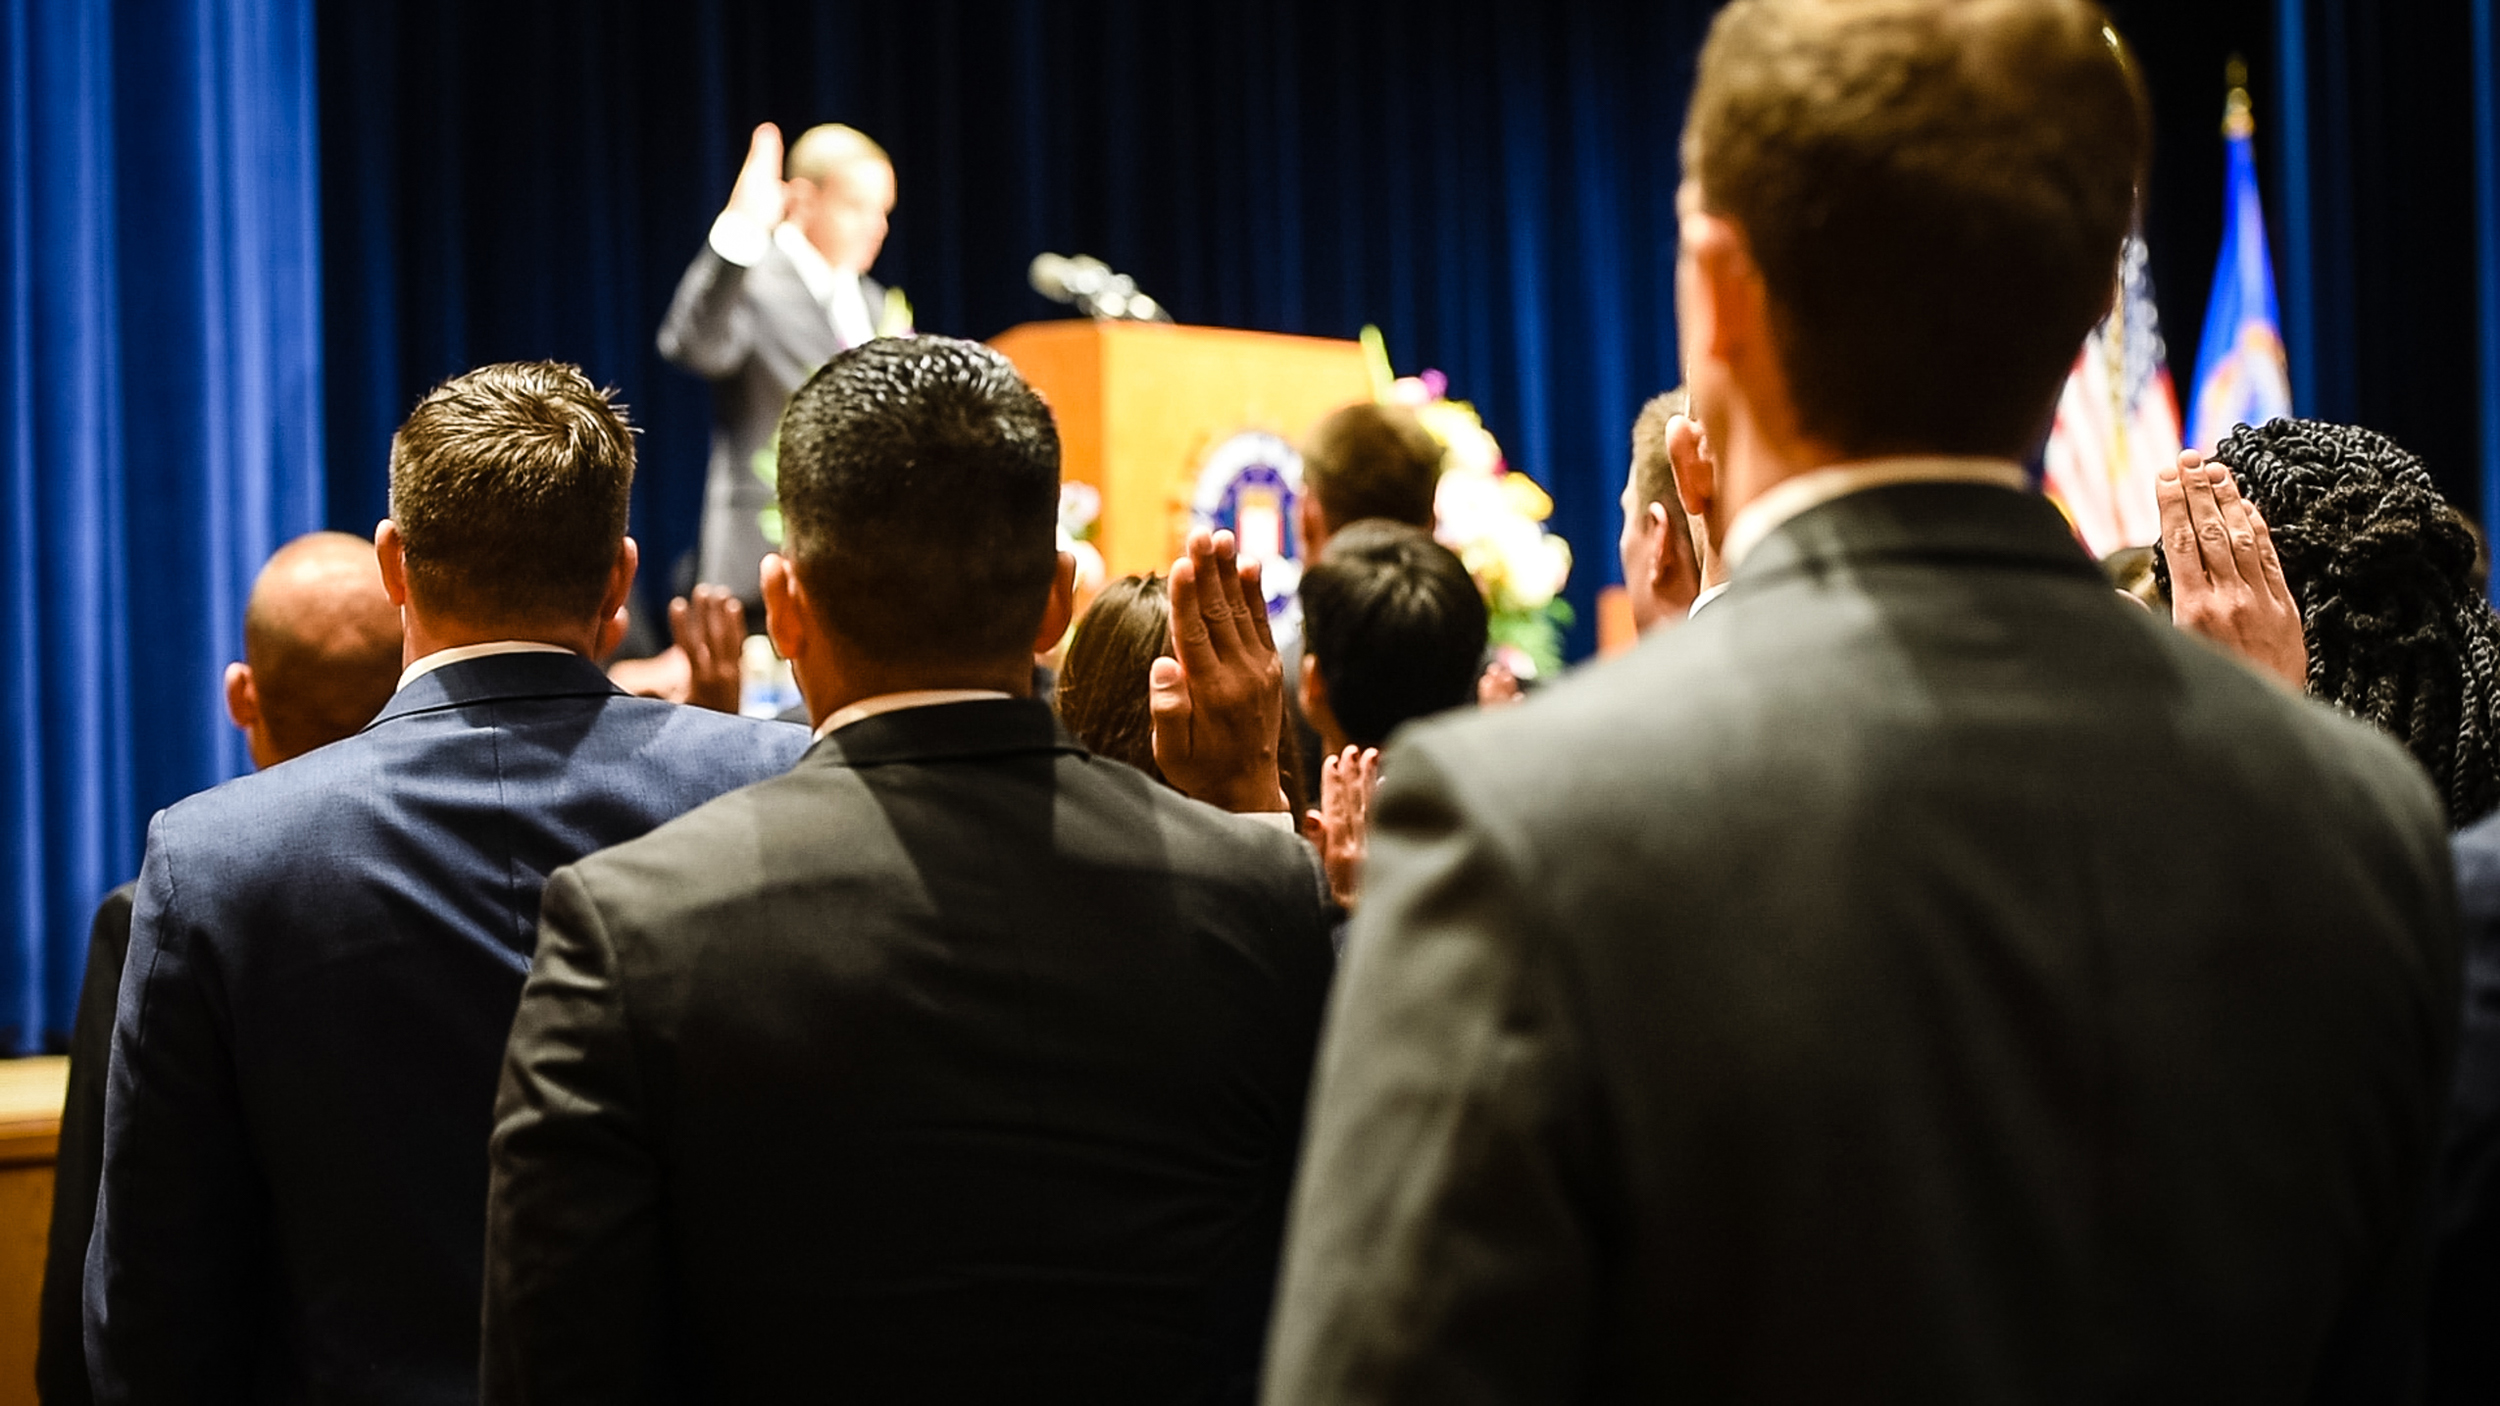 New Agents Take the Oath of Office at Graduation